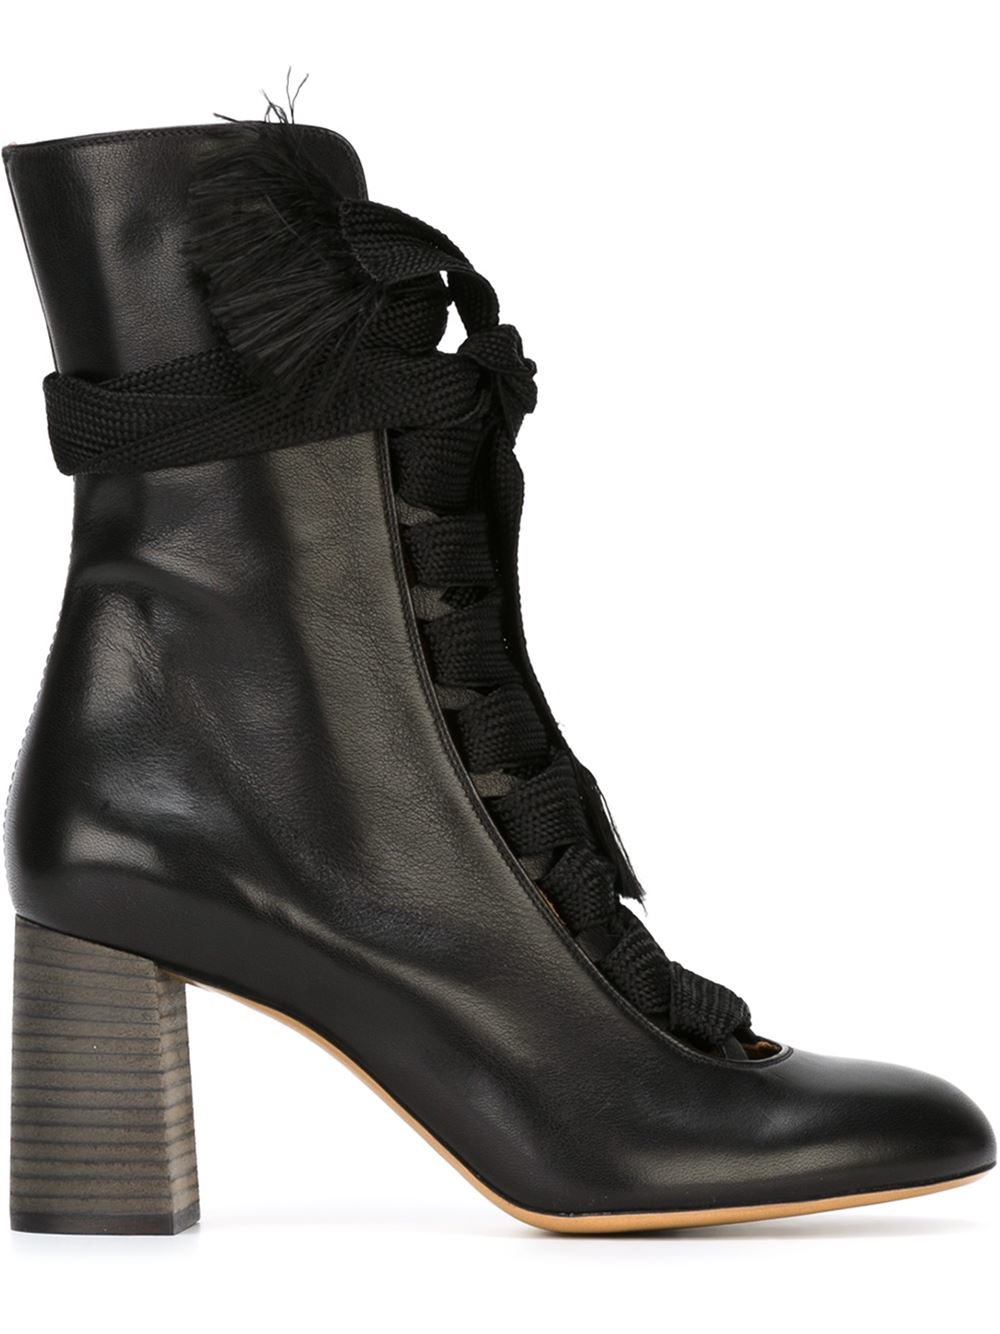 Chlo 233 Chunky Lace Up Boots In Black Lyst